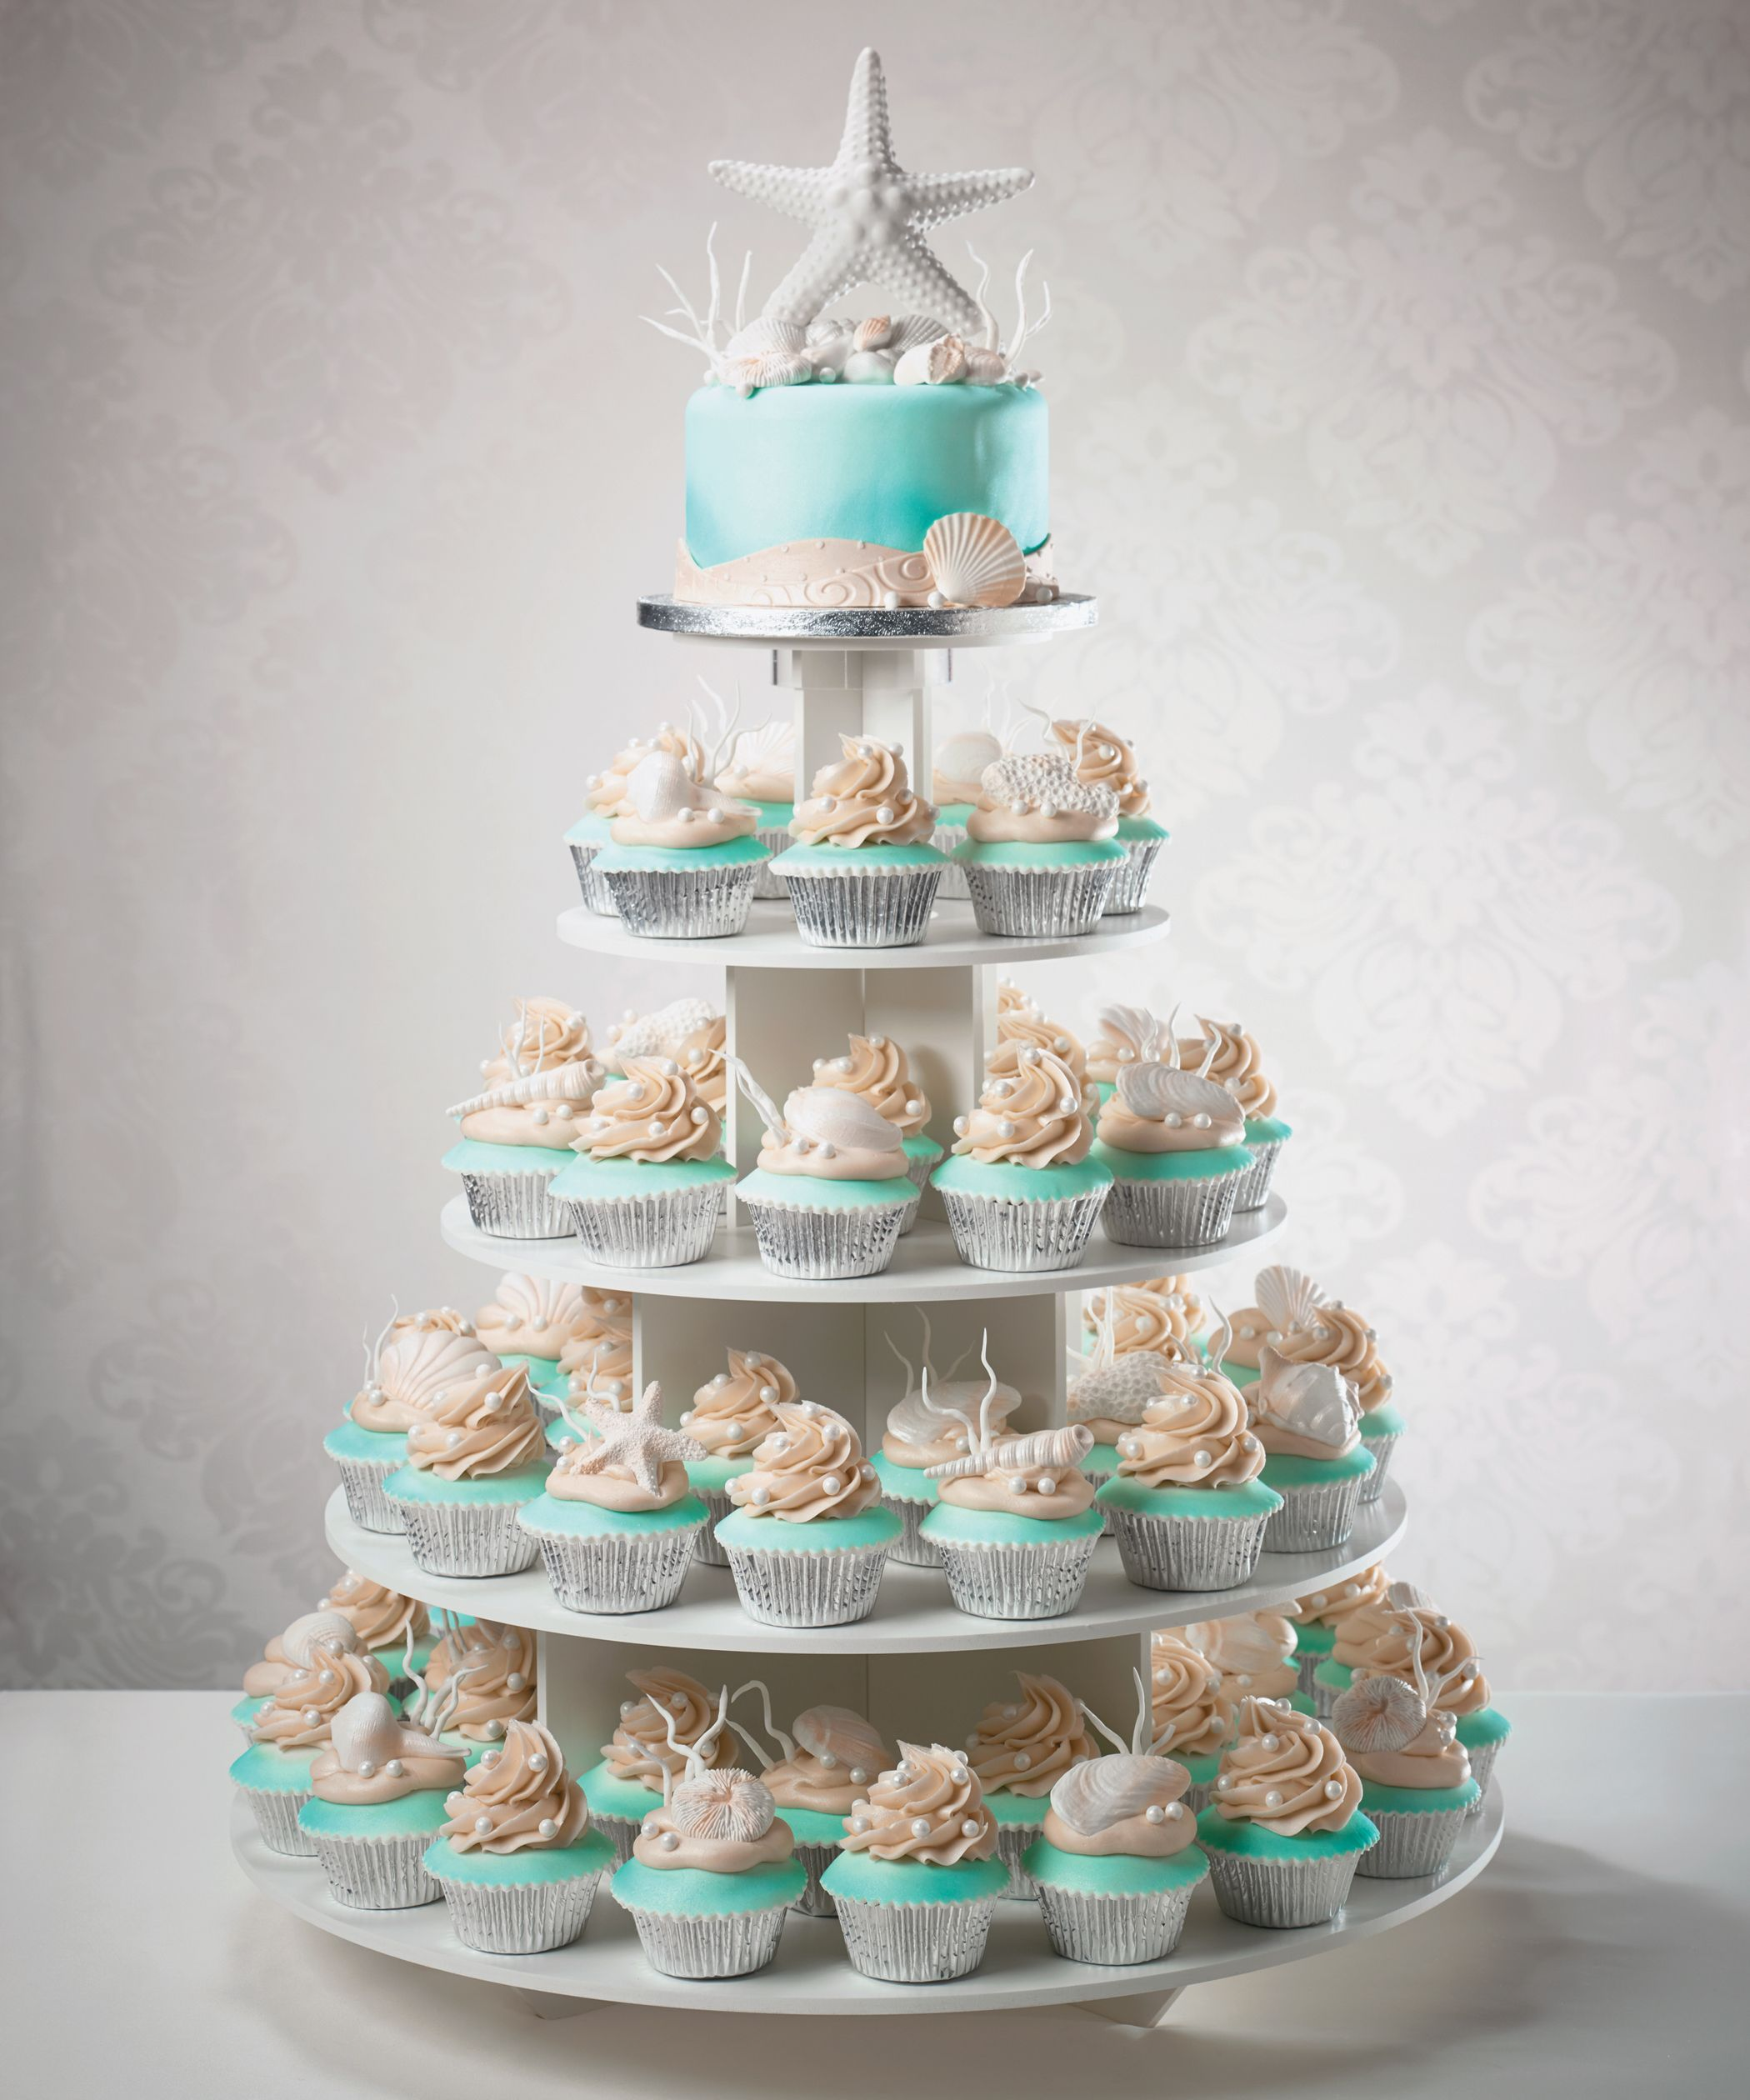 cupcake tiered wedding cake designs wedding cake and cupcake tower for a destination 13153